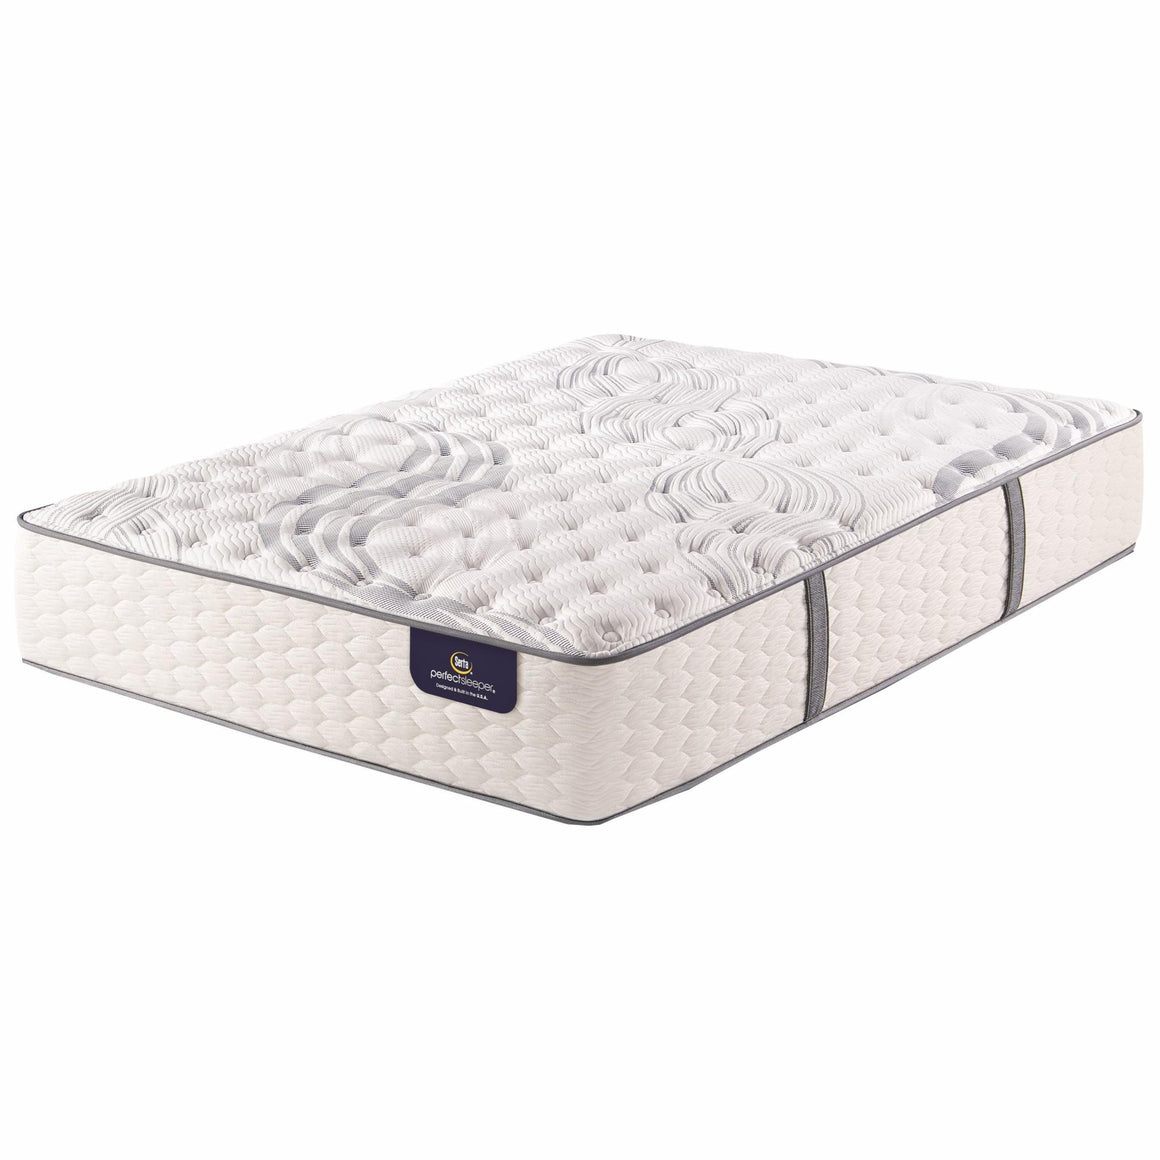 Mattresses, Trellerburg KG  Firm Mattress : Huffman Koos Furniture